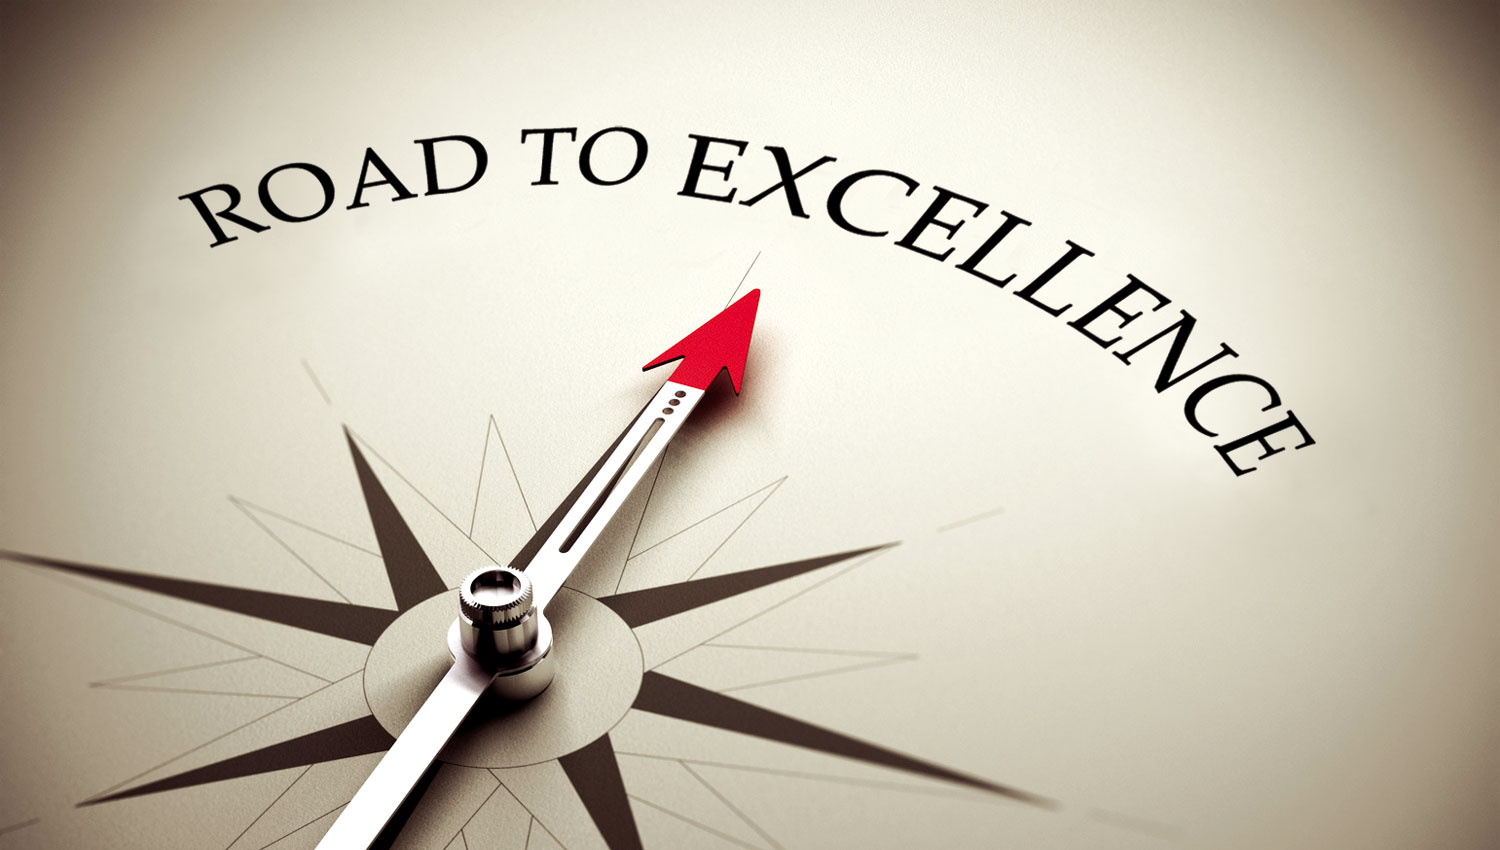 the road to excellence is paved with rewards complete wellbeing